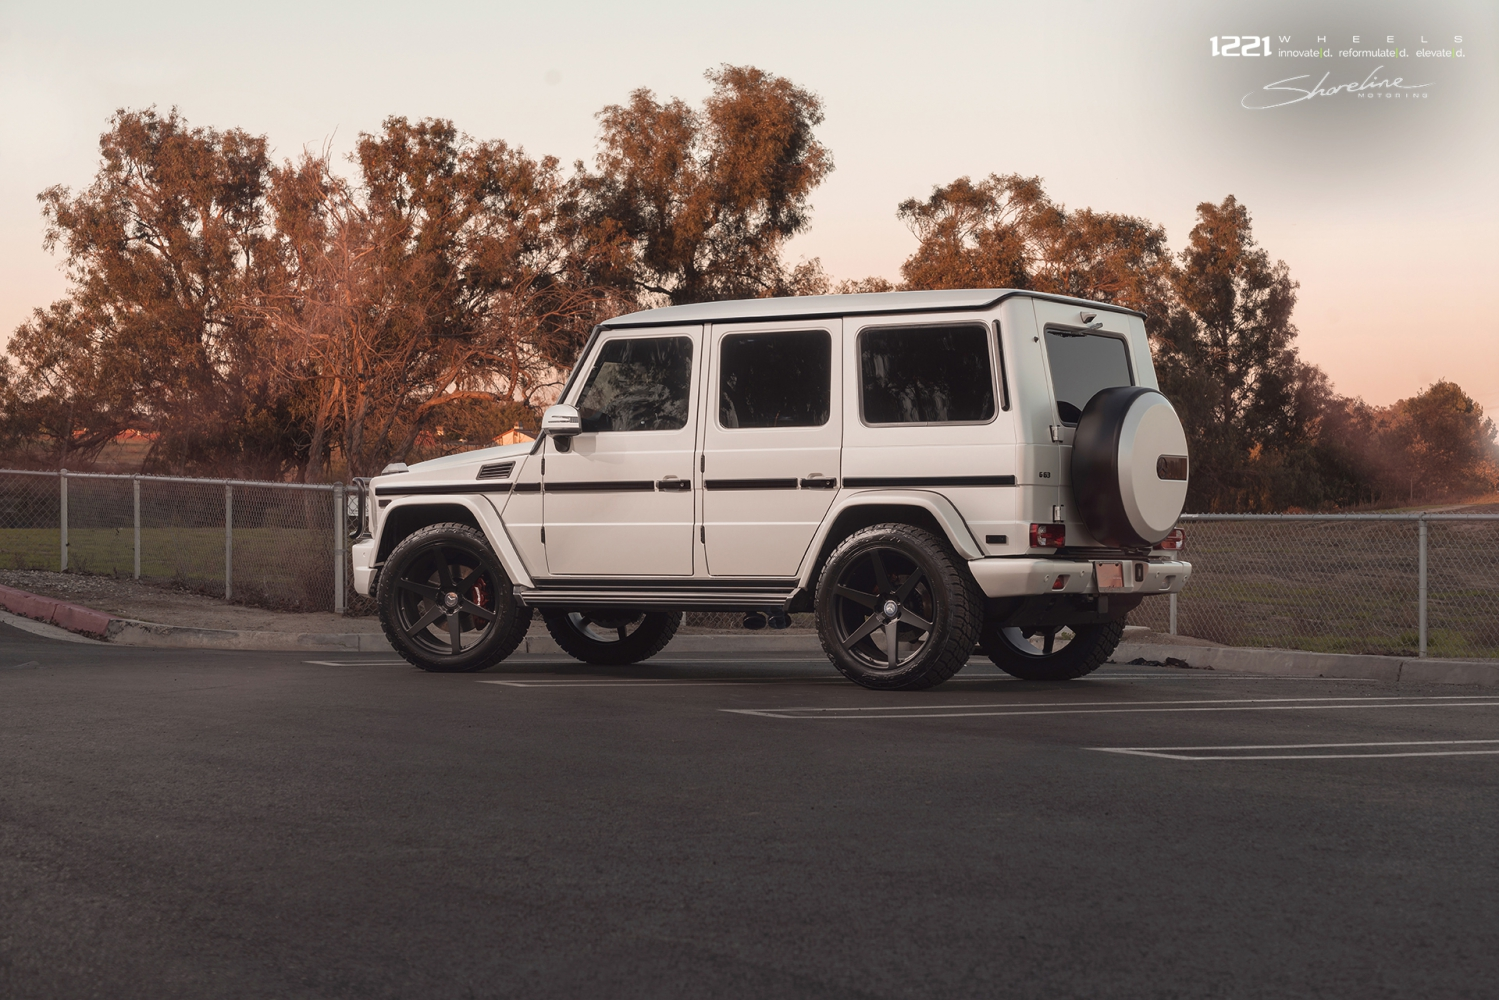 Mercedes Benz G Class AMG Wagon forged concave wheels